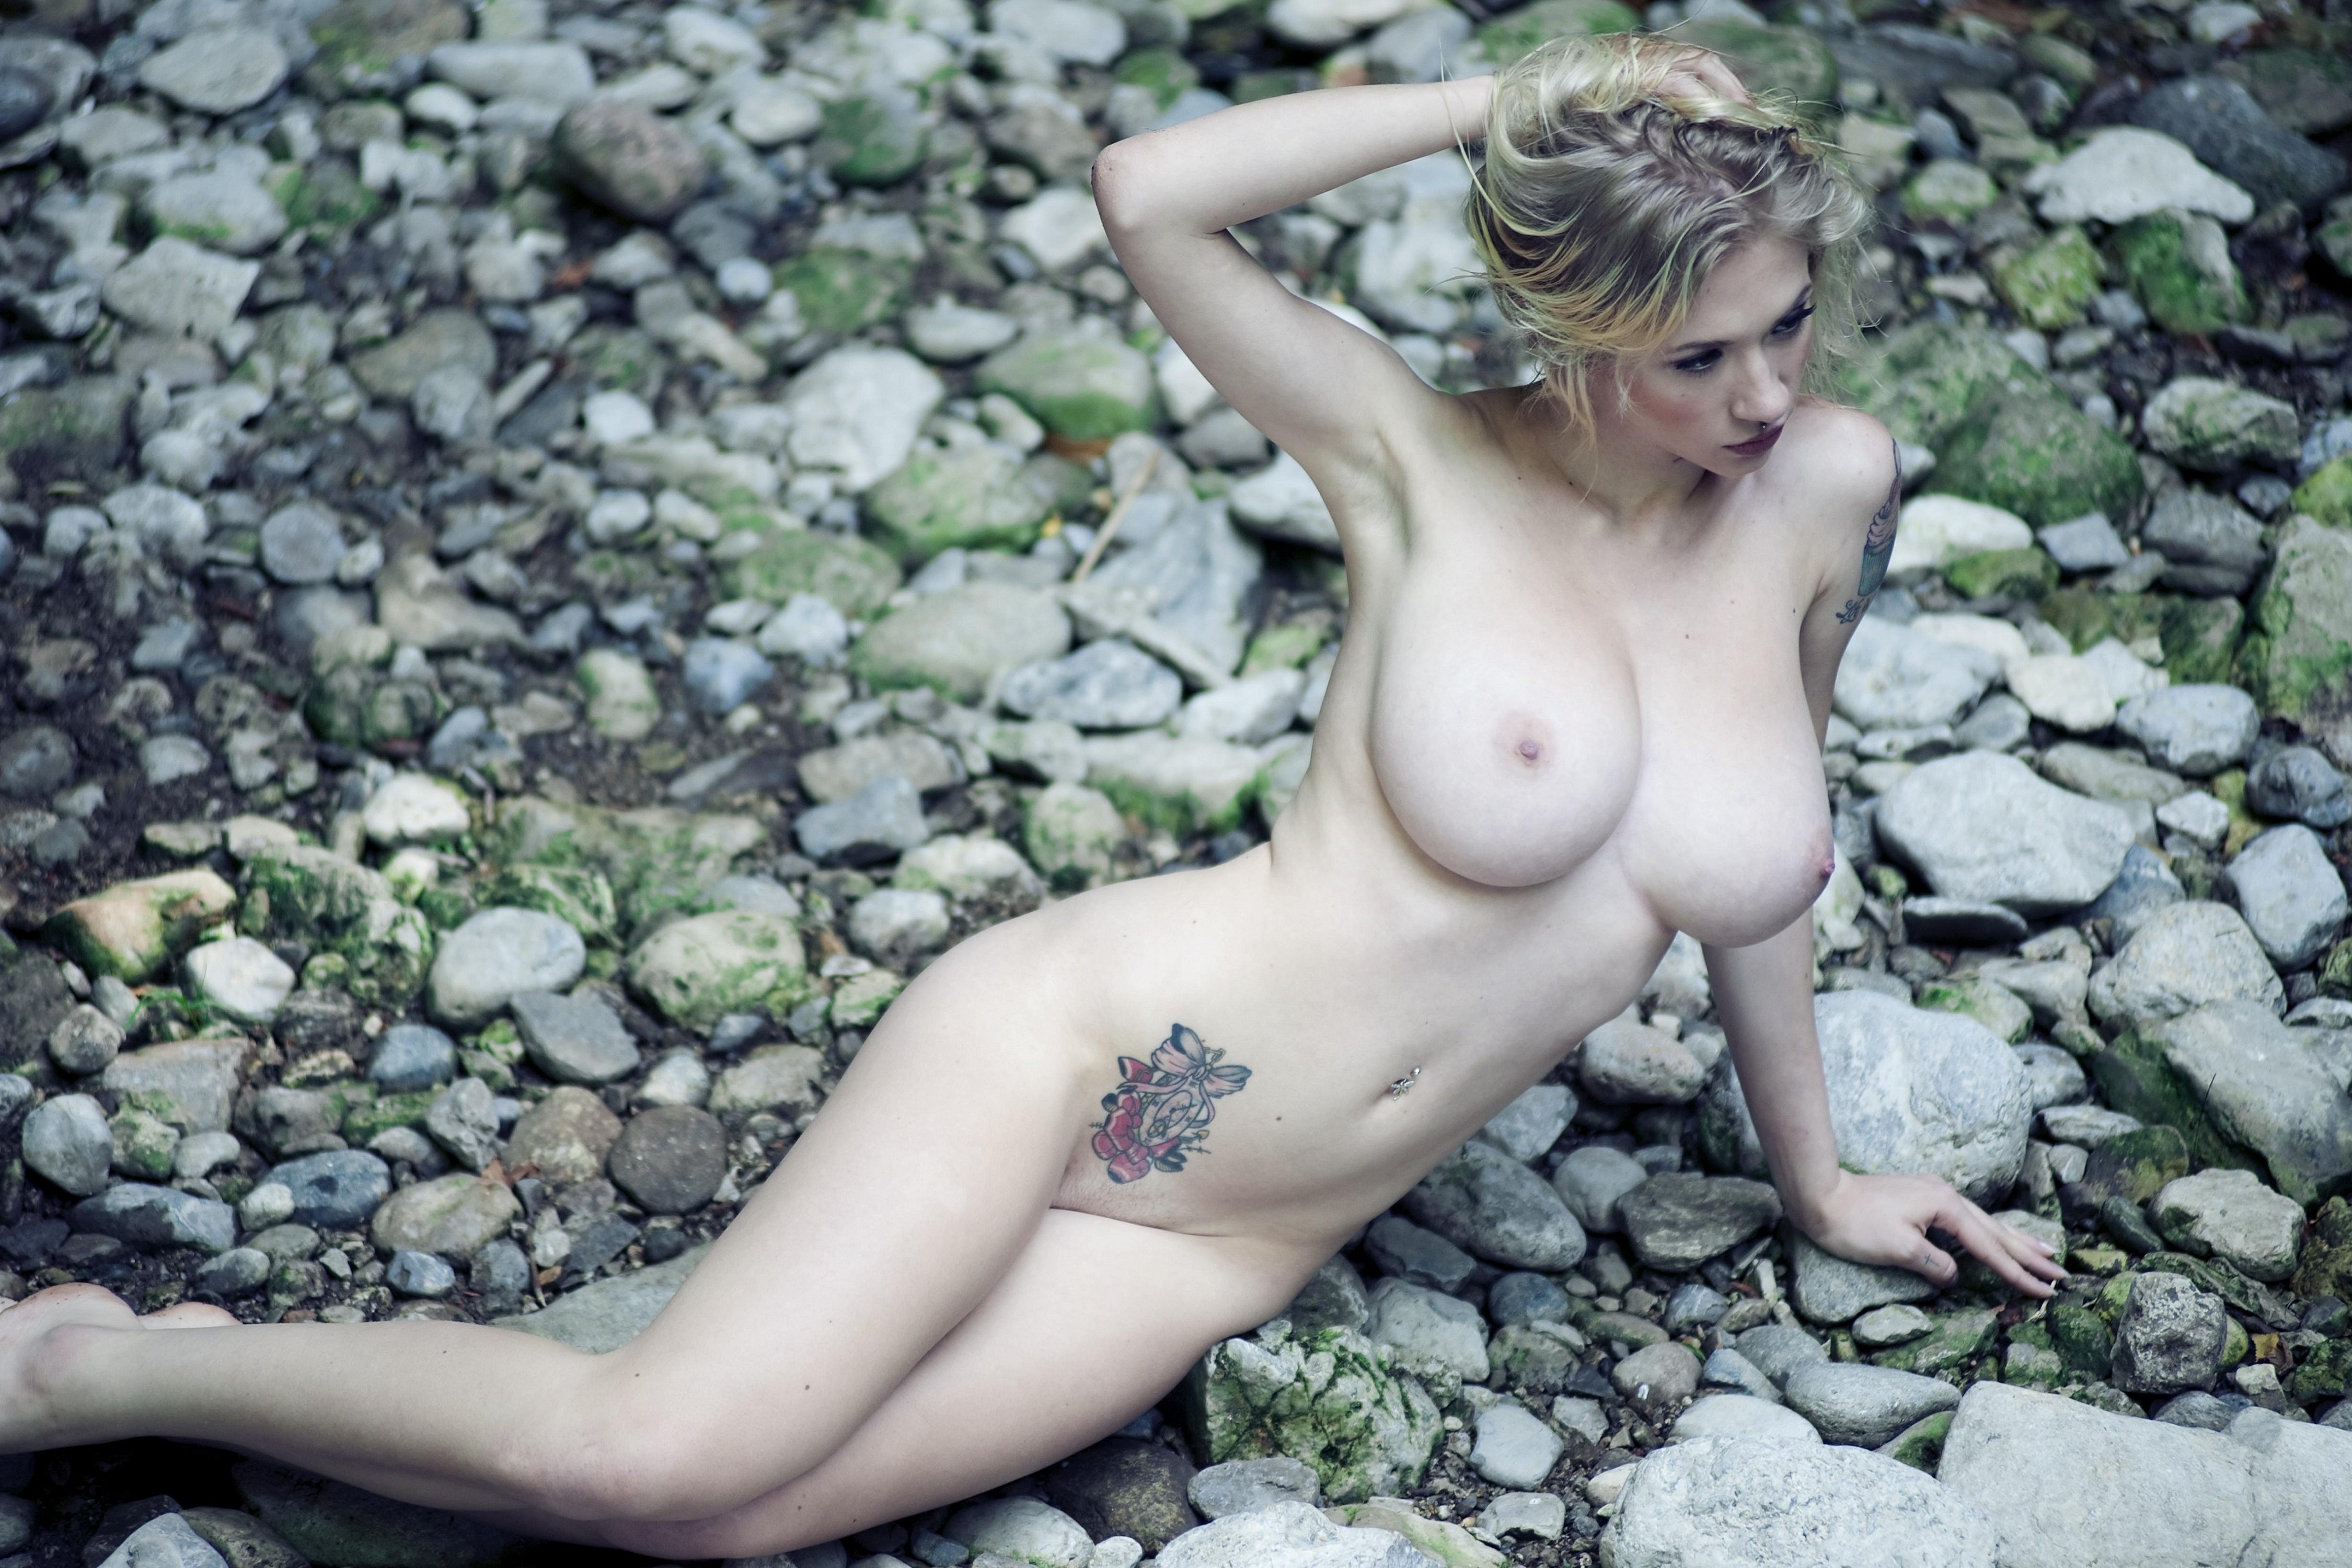 Big tits suicide girls nude right!